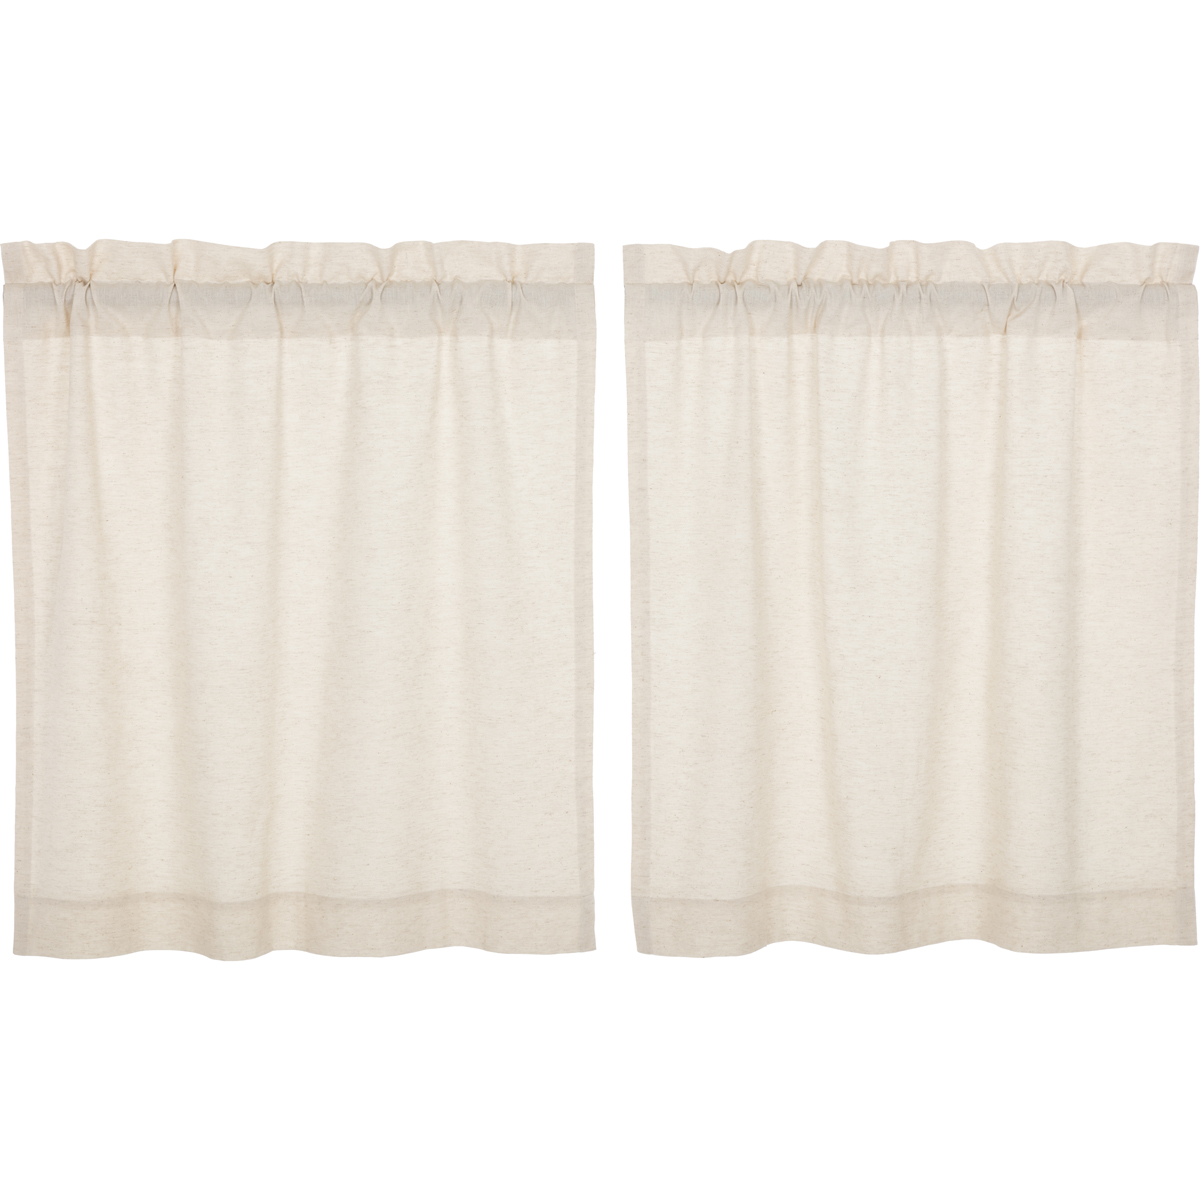 Simple Life Flax Natural Tier Set of 2 L36xW36